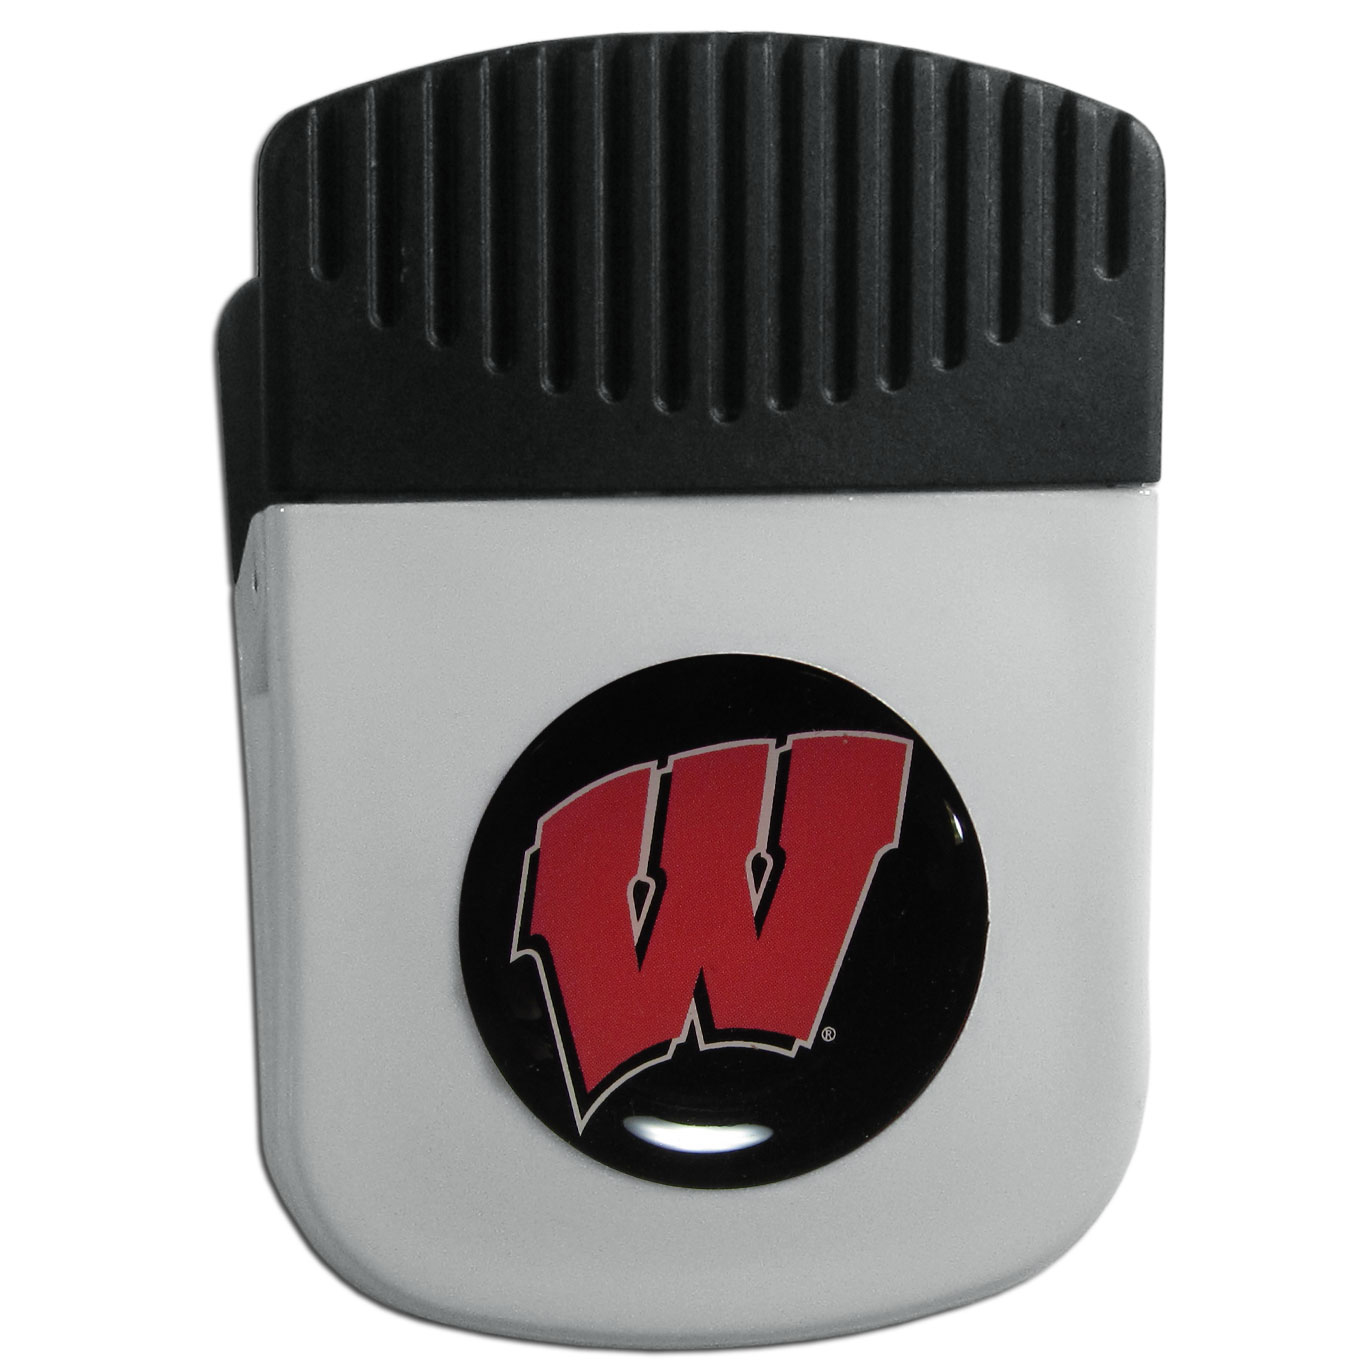 Wisconsin Badgers Chip Clip Magnet - Use this attractive clip magnet to hold memos, photos or appointment cards on the fridge or take it down keep use it to clip bags shut. The magnet features a domed Wisconsin Badgers logo.